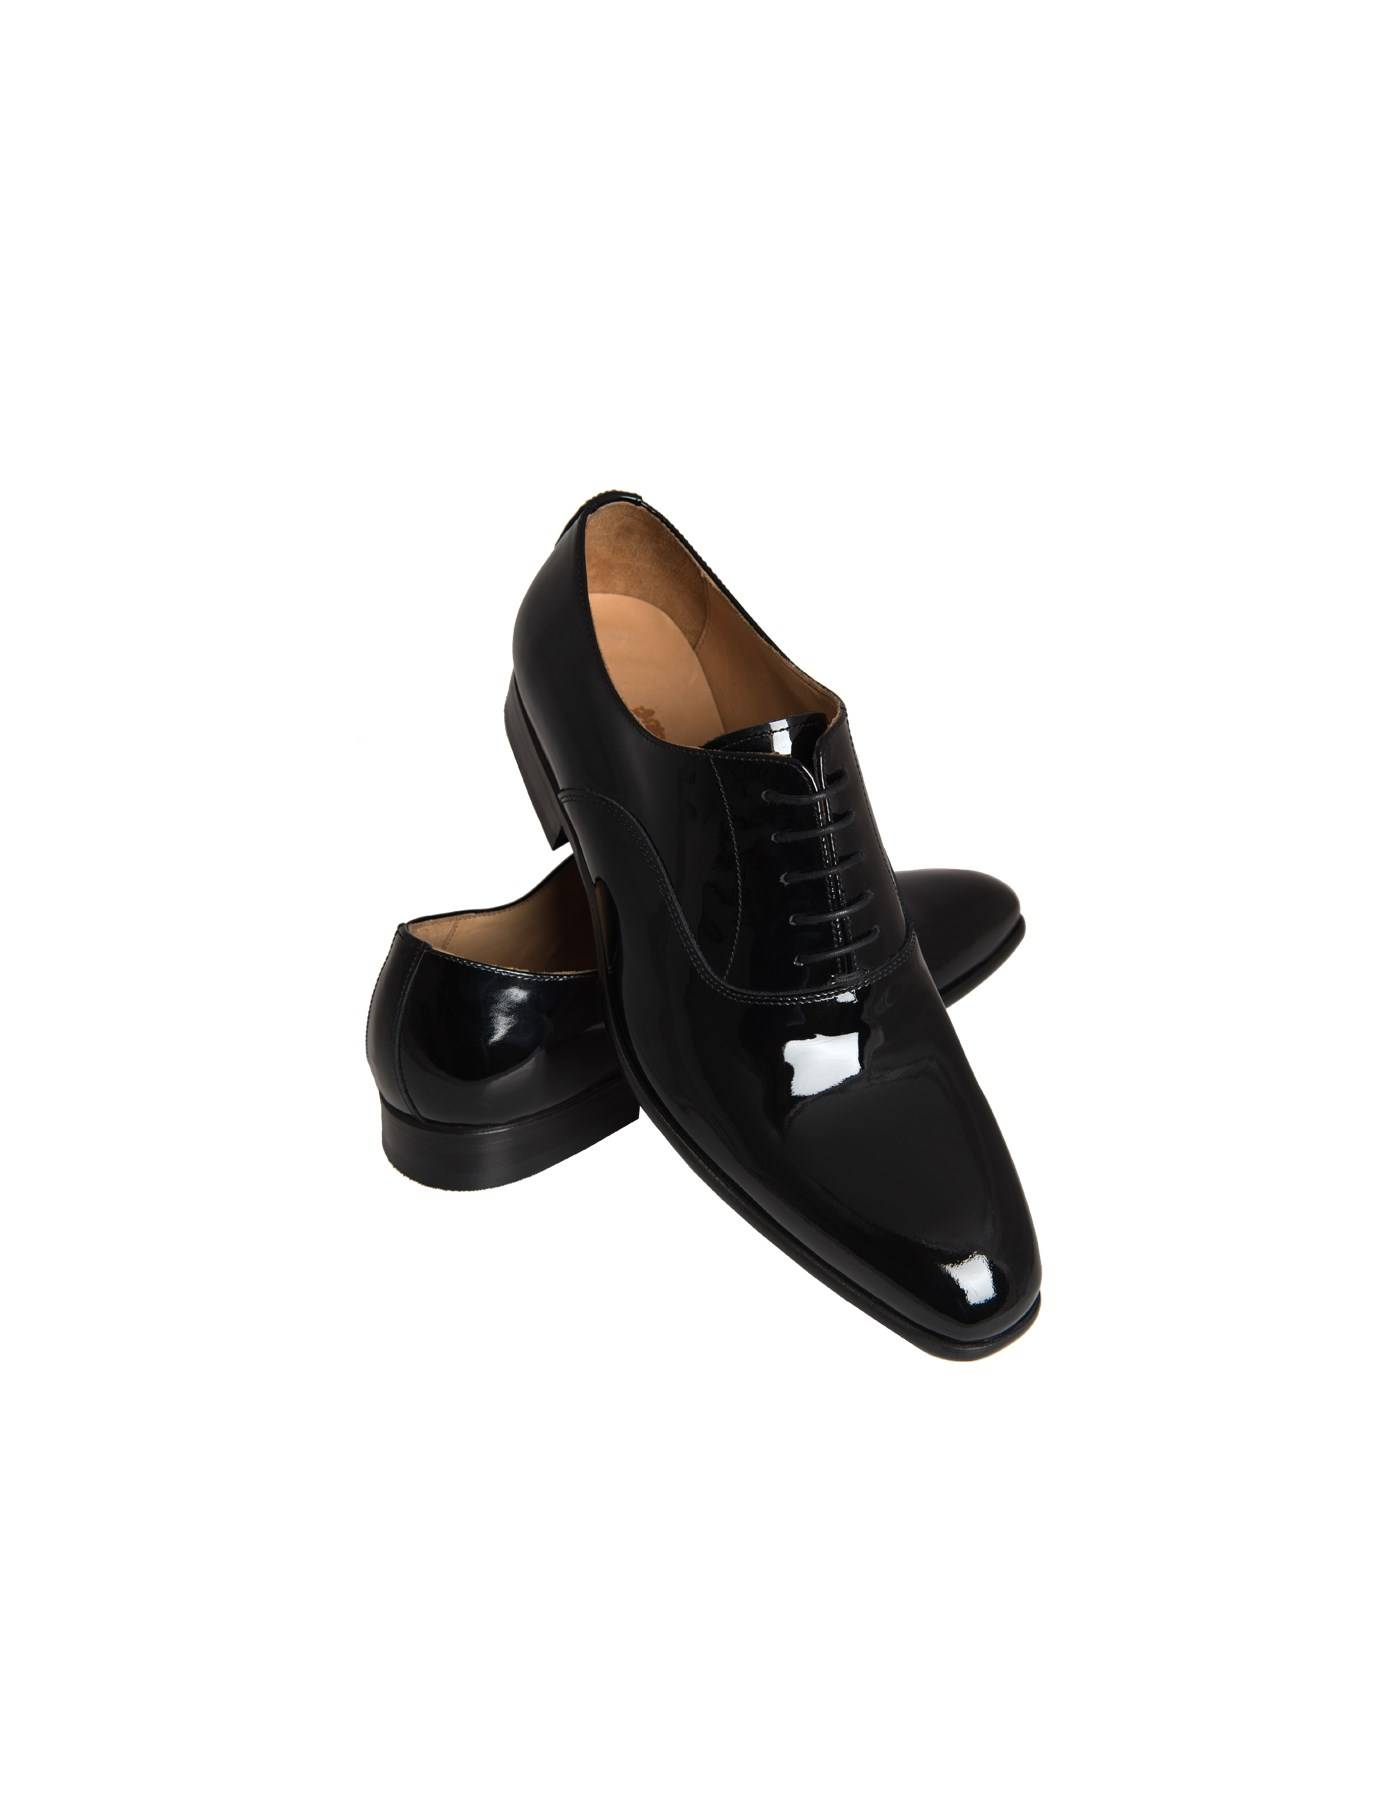 Hawes & Curtis Men's Patent Lace Up Dress Shoes in Black Size 9.5 Leather Hawes & Curtis